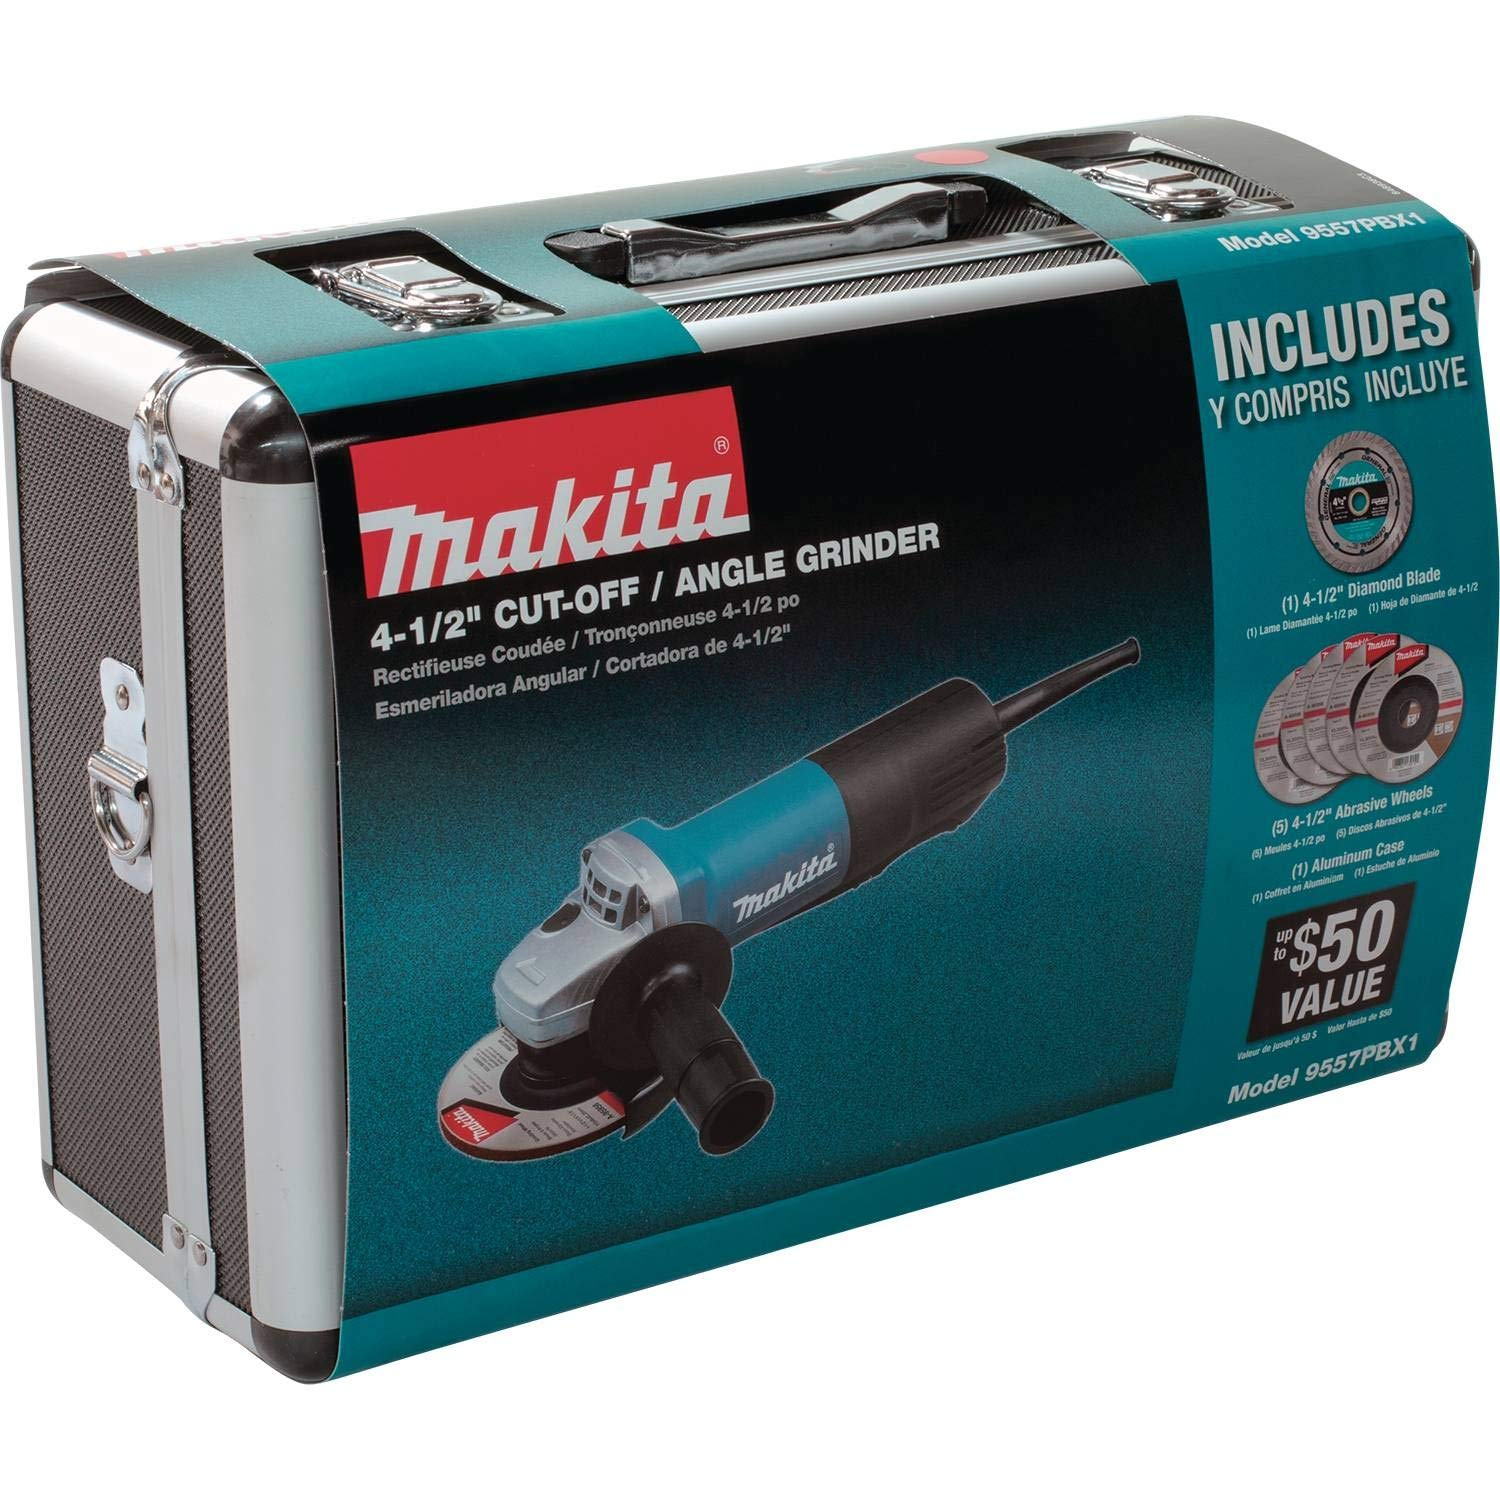 Makita 9557PBX1 4-1//2 In Paddle Switch Angle Grinder w// Case and Grinding Wheels